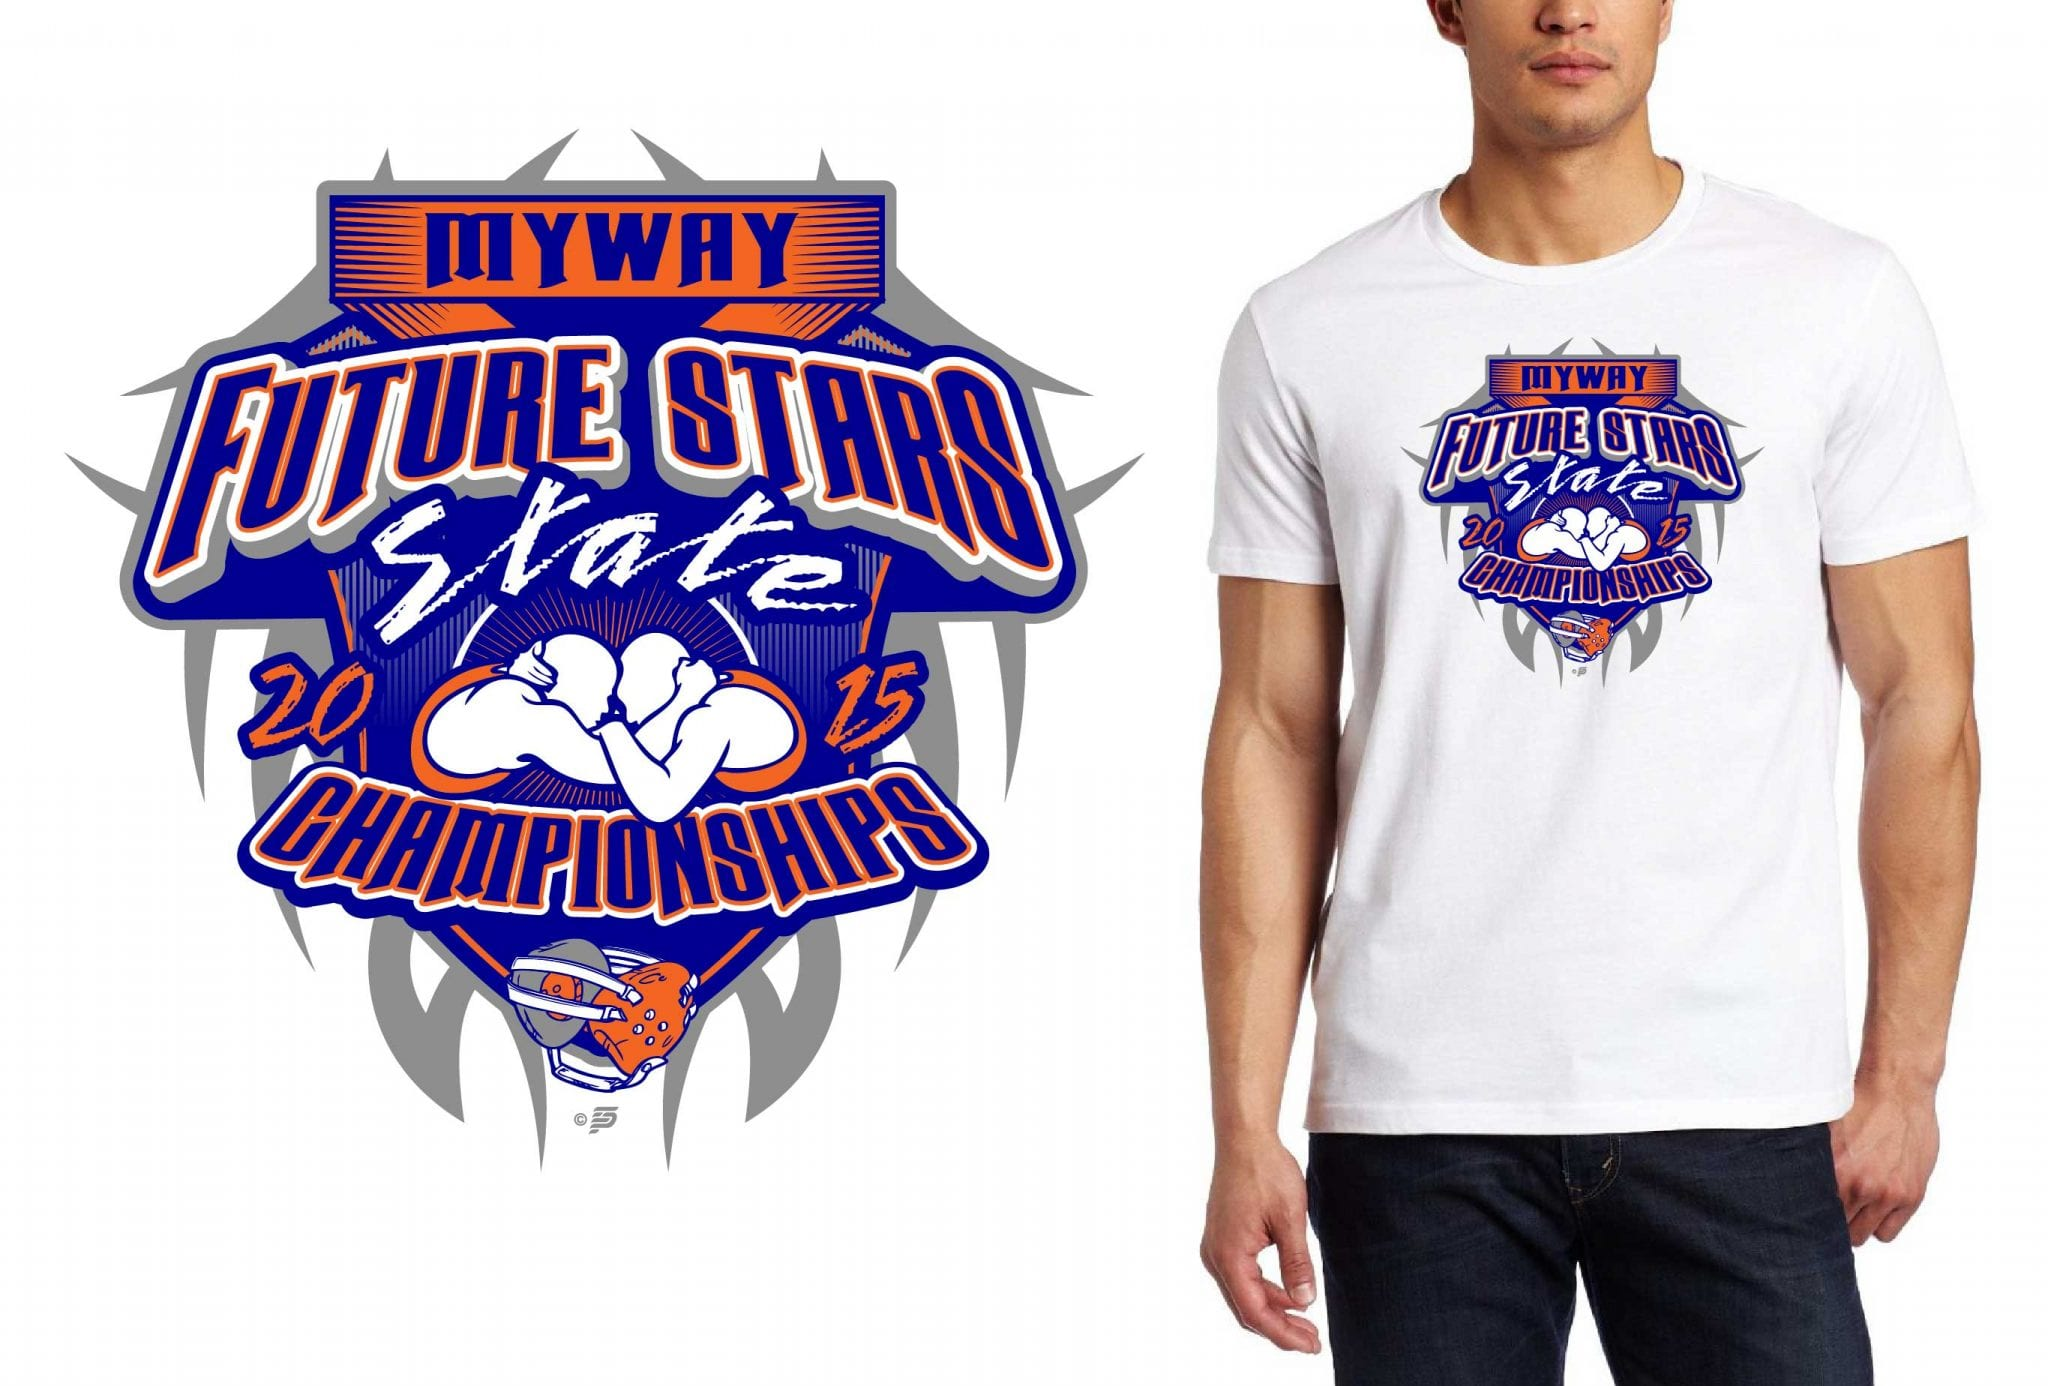 2015 MYWAY Future Stars State Championships cool wrestling logo design for tshirt